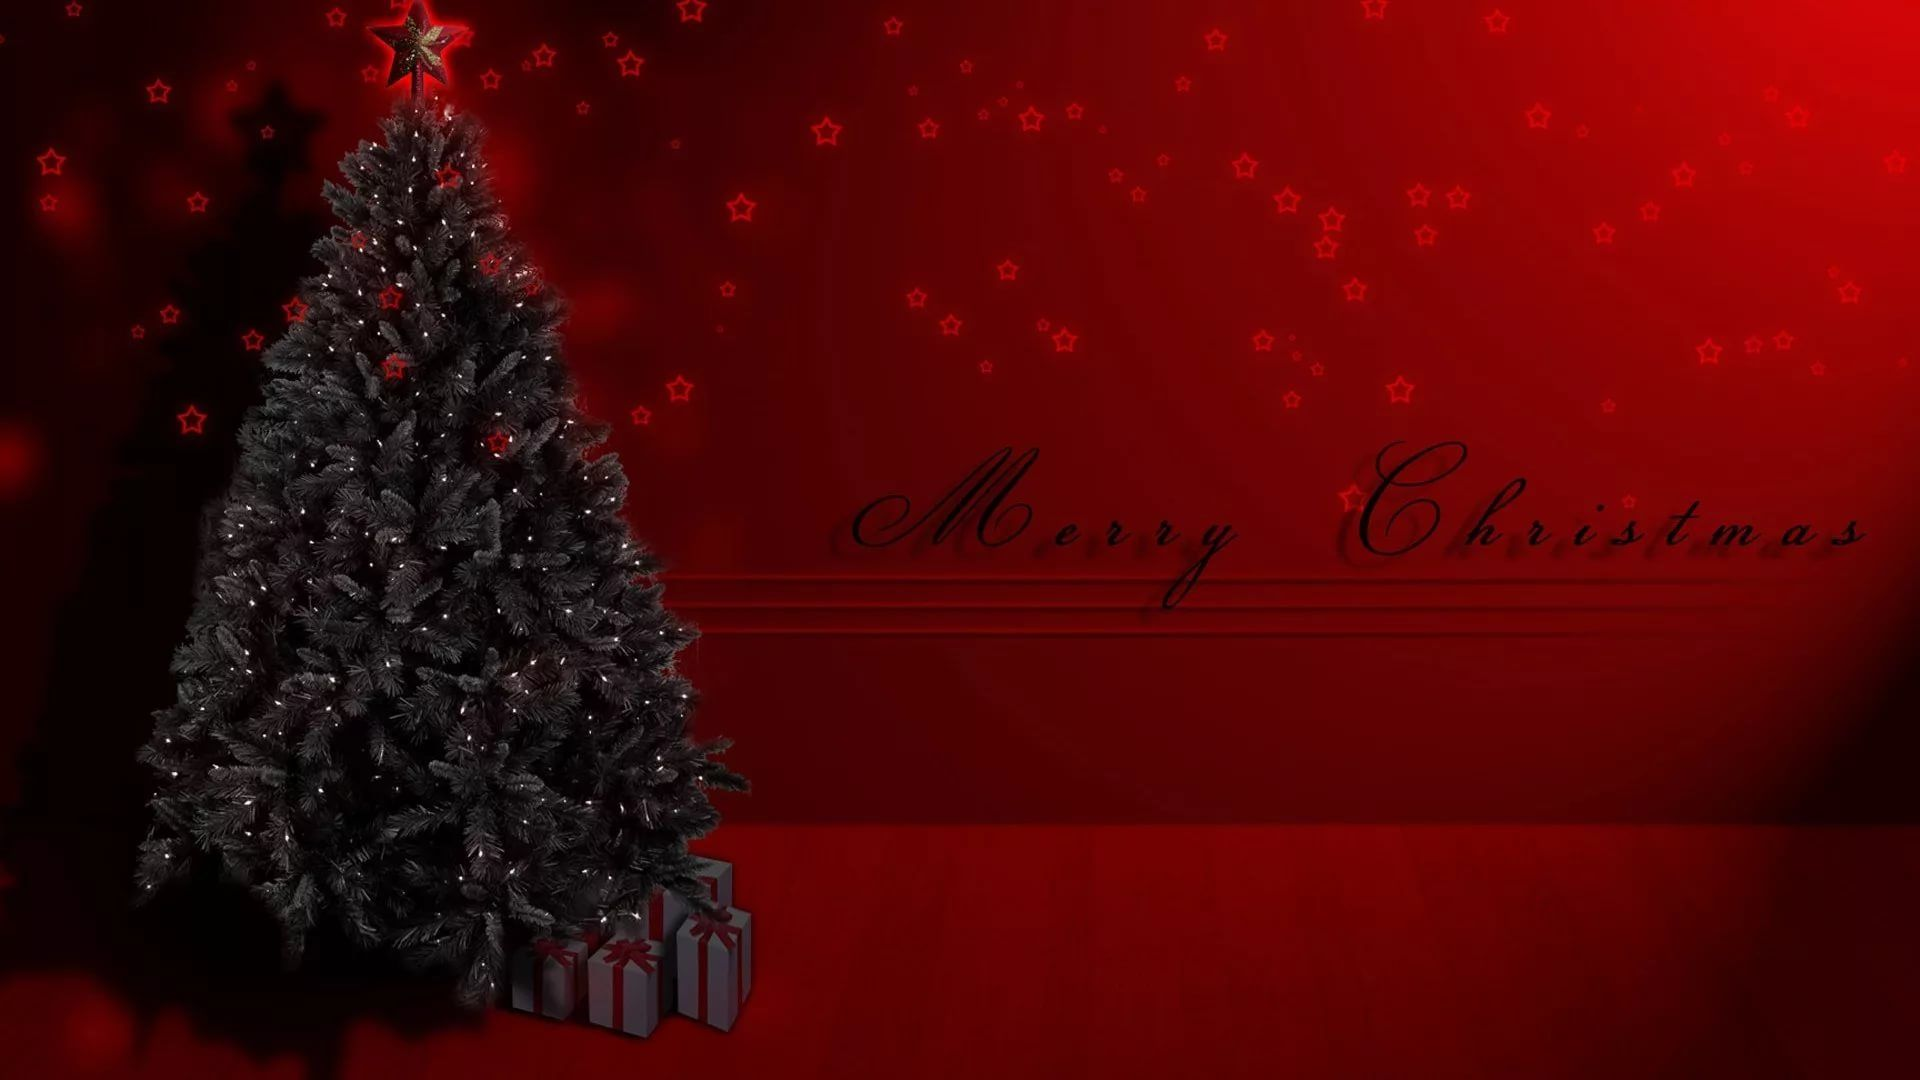 Merry Christmas HD Download